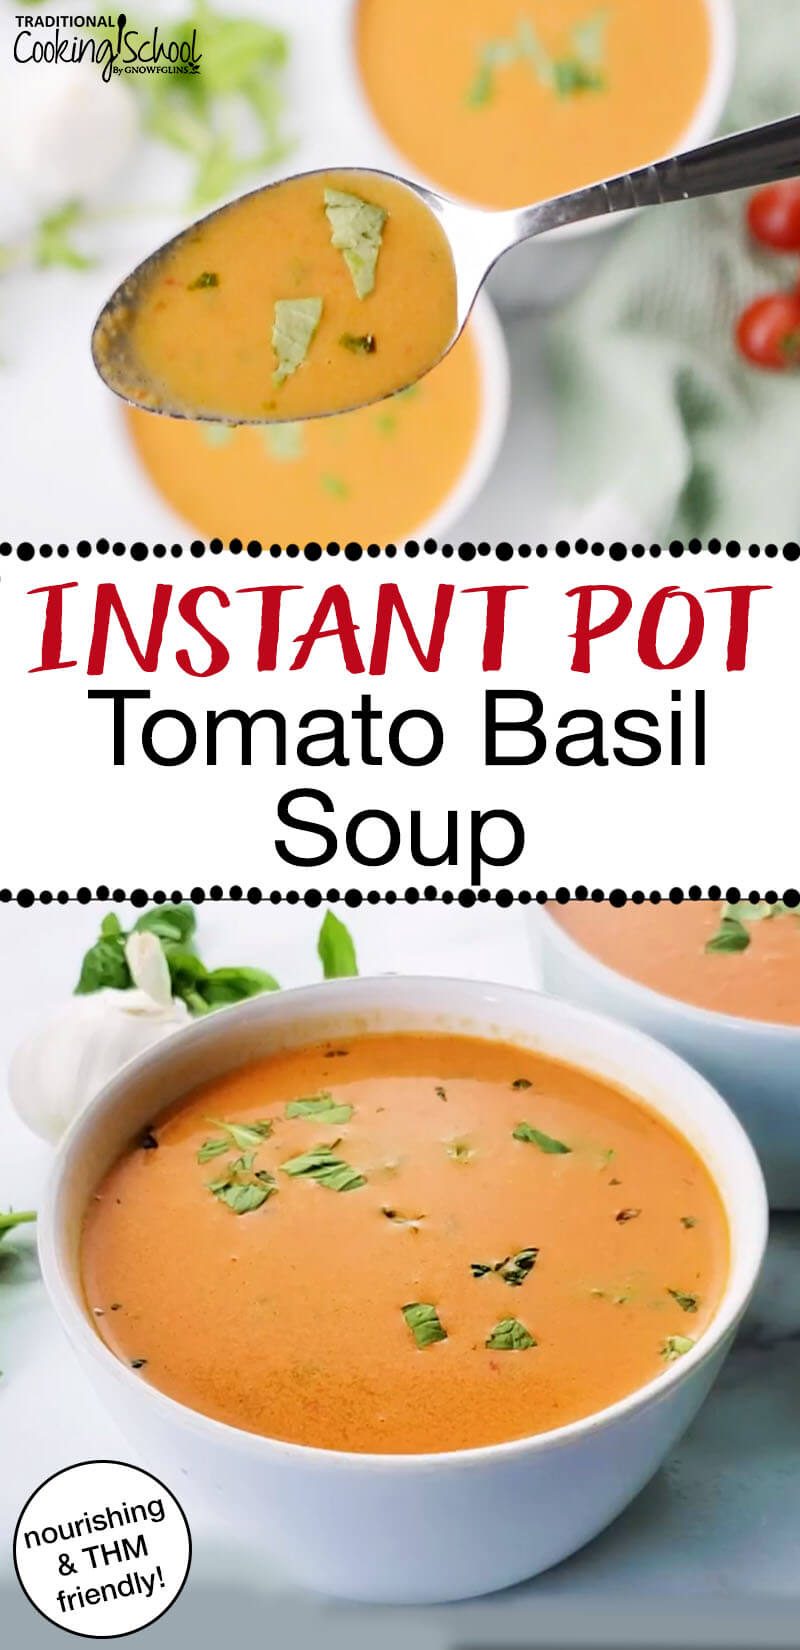 Instant Pot Tomato Basil Soup {nourishing & THM-friendly!} | With mineral-rich bone broth, healthy traditional fats, and the natural vitamin C and lycopene in tomatoes, this healthy, creamy, nourishing Instant Pot Tomato Basil Soup is a great choice for fall and winter (and to use up summer's tomatoes)! Even the kids will beg for it!